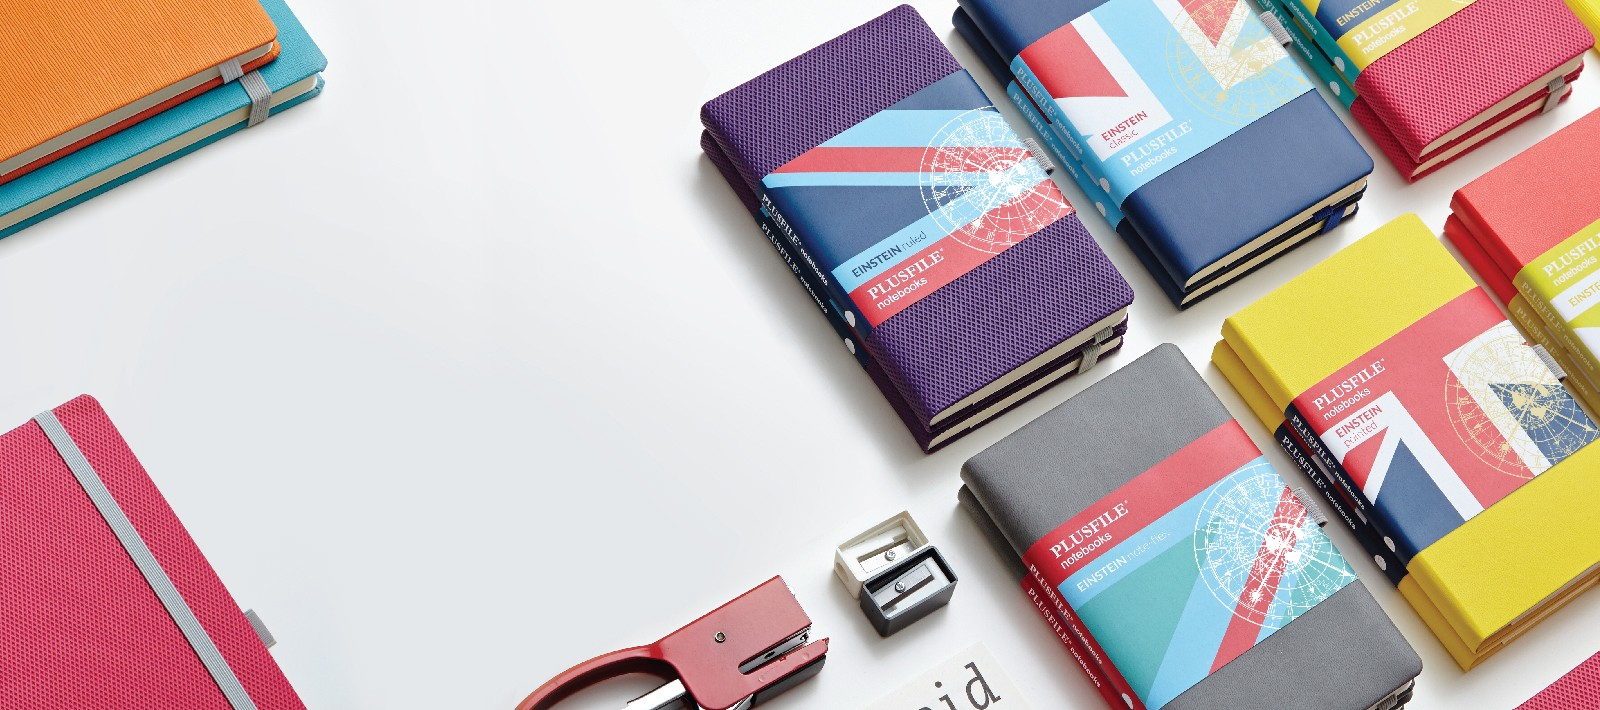 Brand strategy for a stationery brand